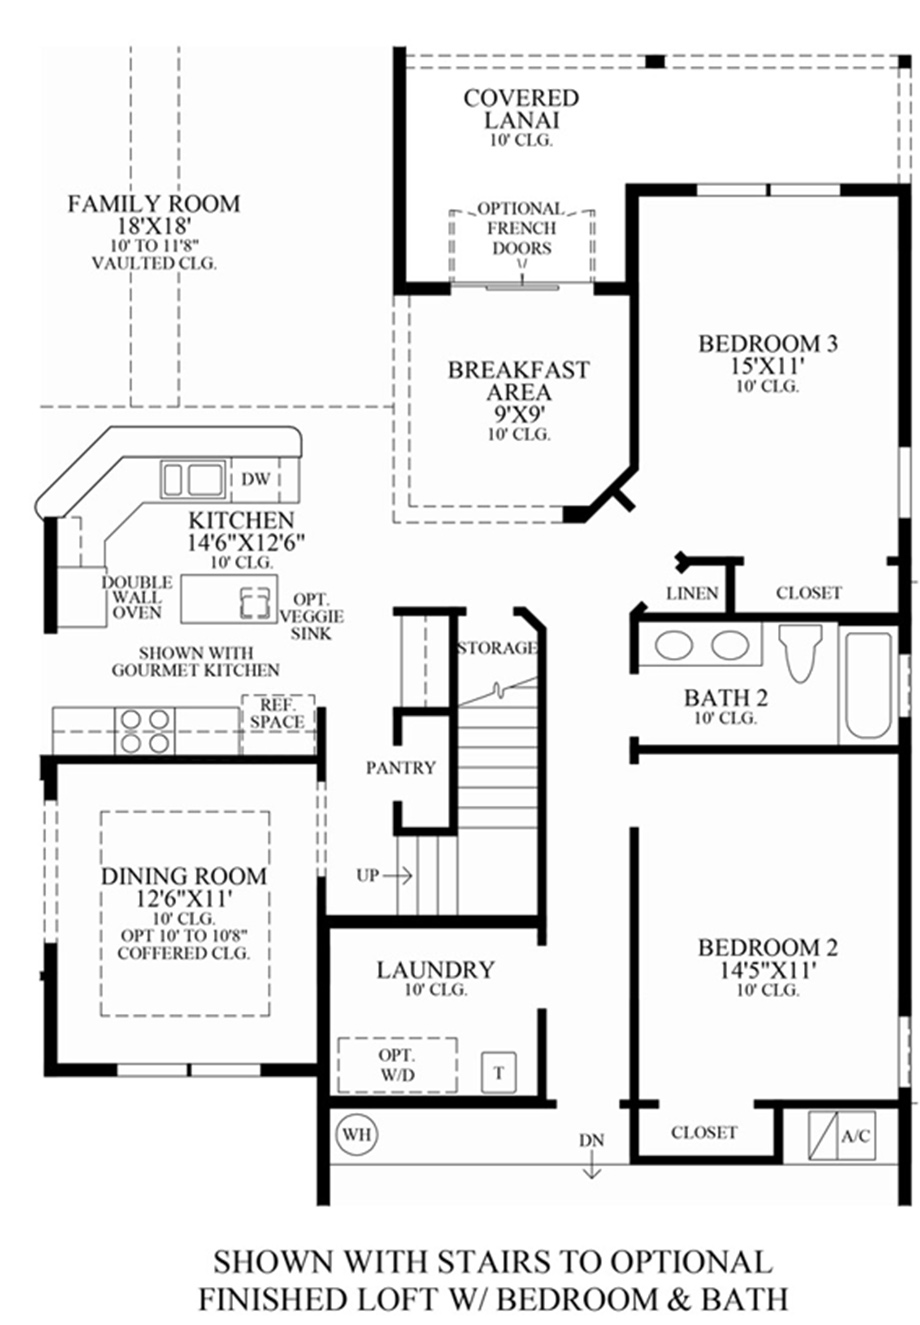 Optional Stairs To Finished Loft W Bedroom Amp Bath Floor Plan